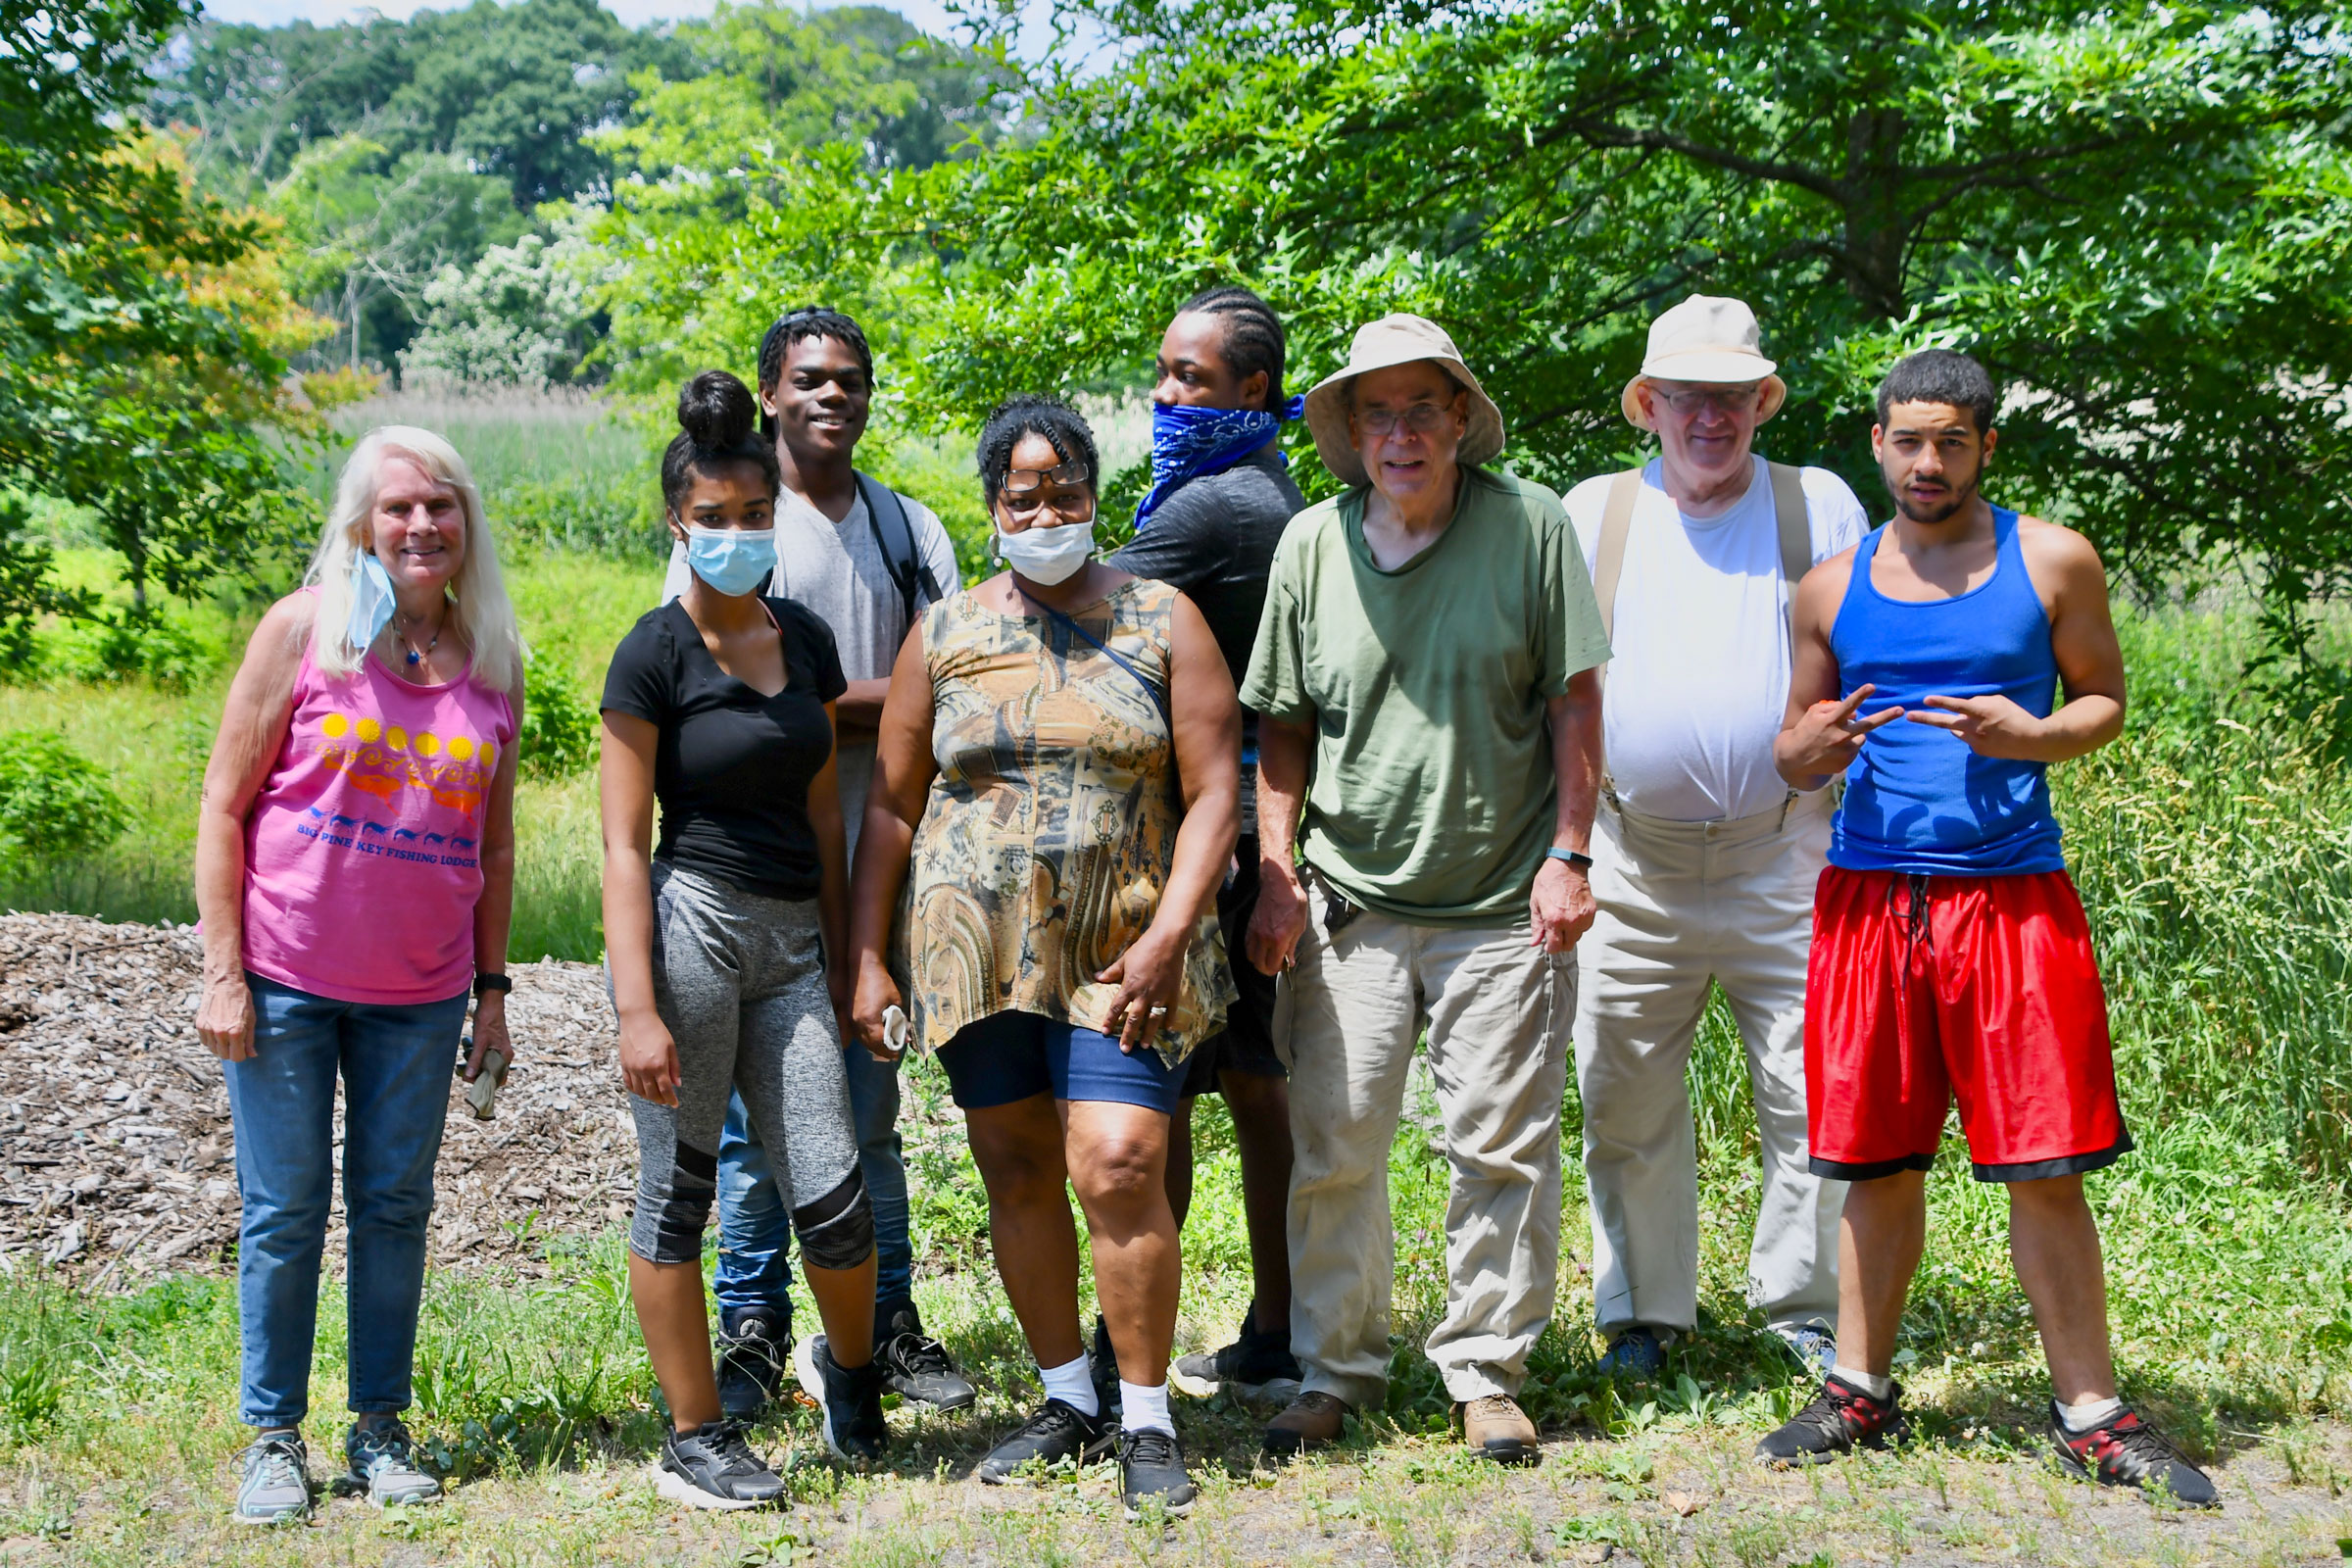 Volunteers and members of the Menunkatuck Audubon Society after a day of planting at the Urbanscapes Native Plant Nursery in New Haven, Connecticut. Courtesy of Menunkatuck Audubon Society